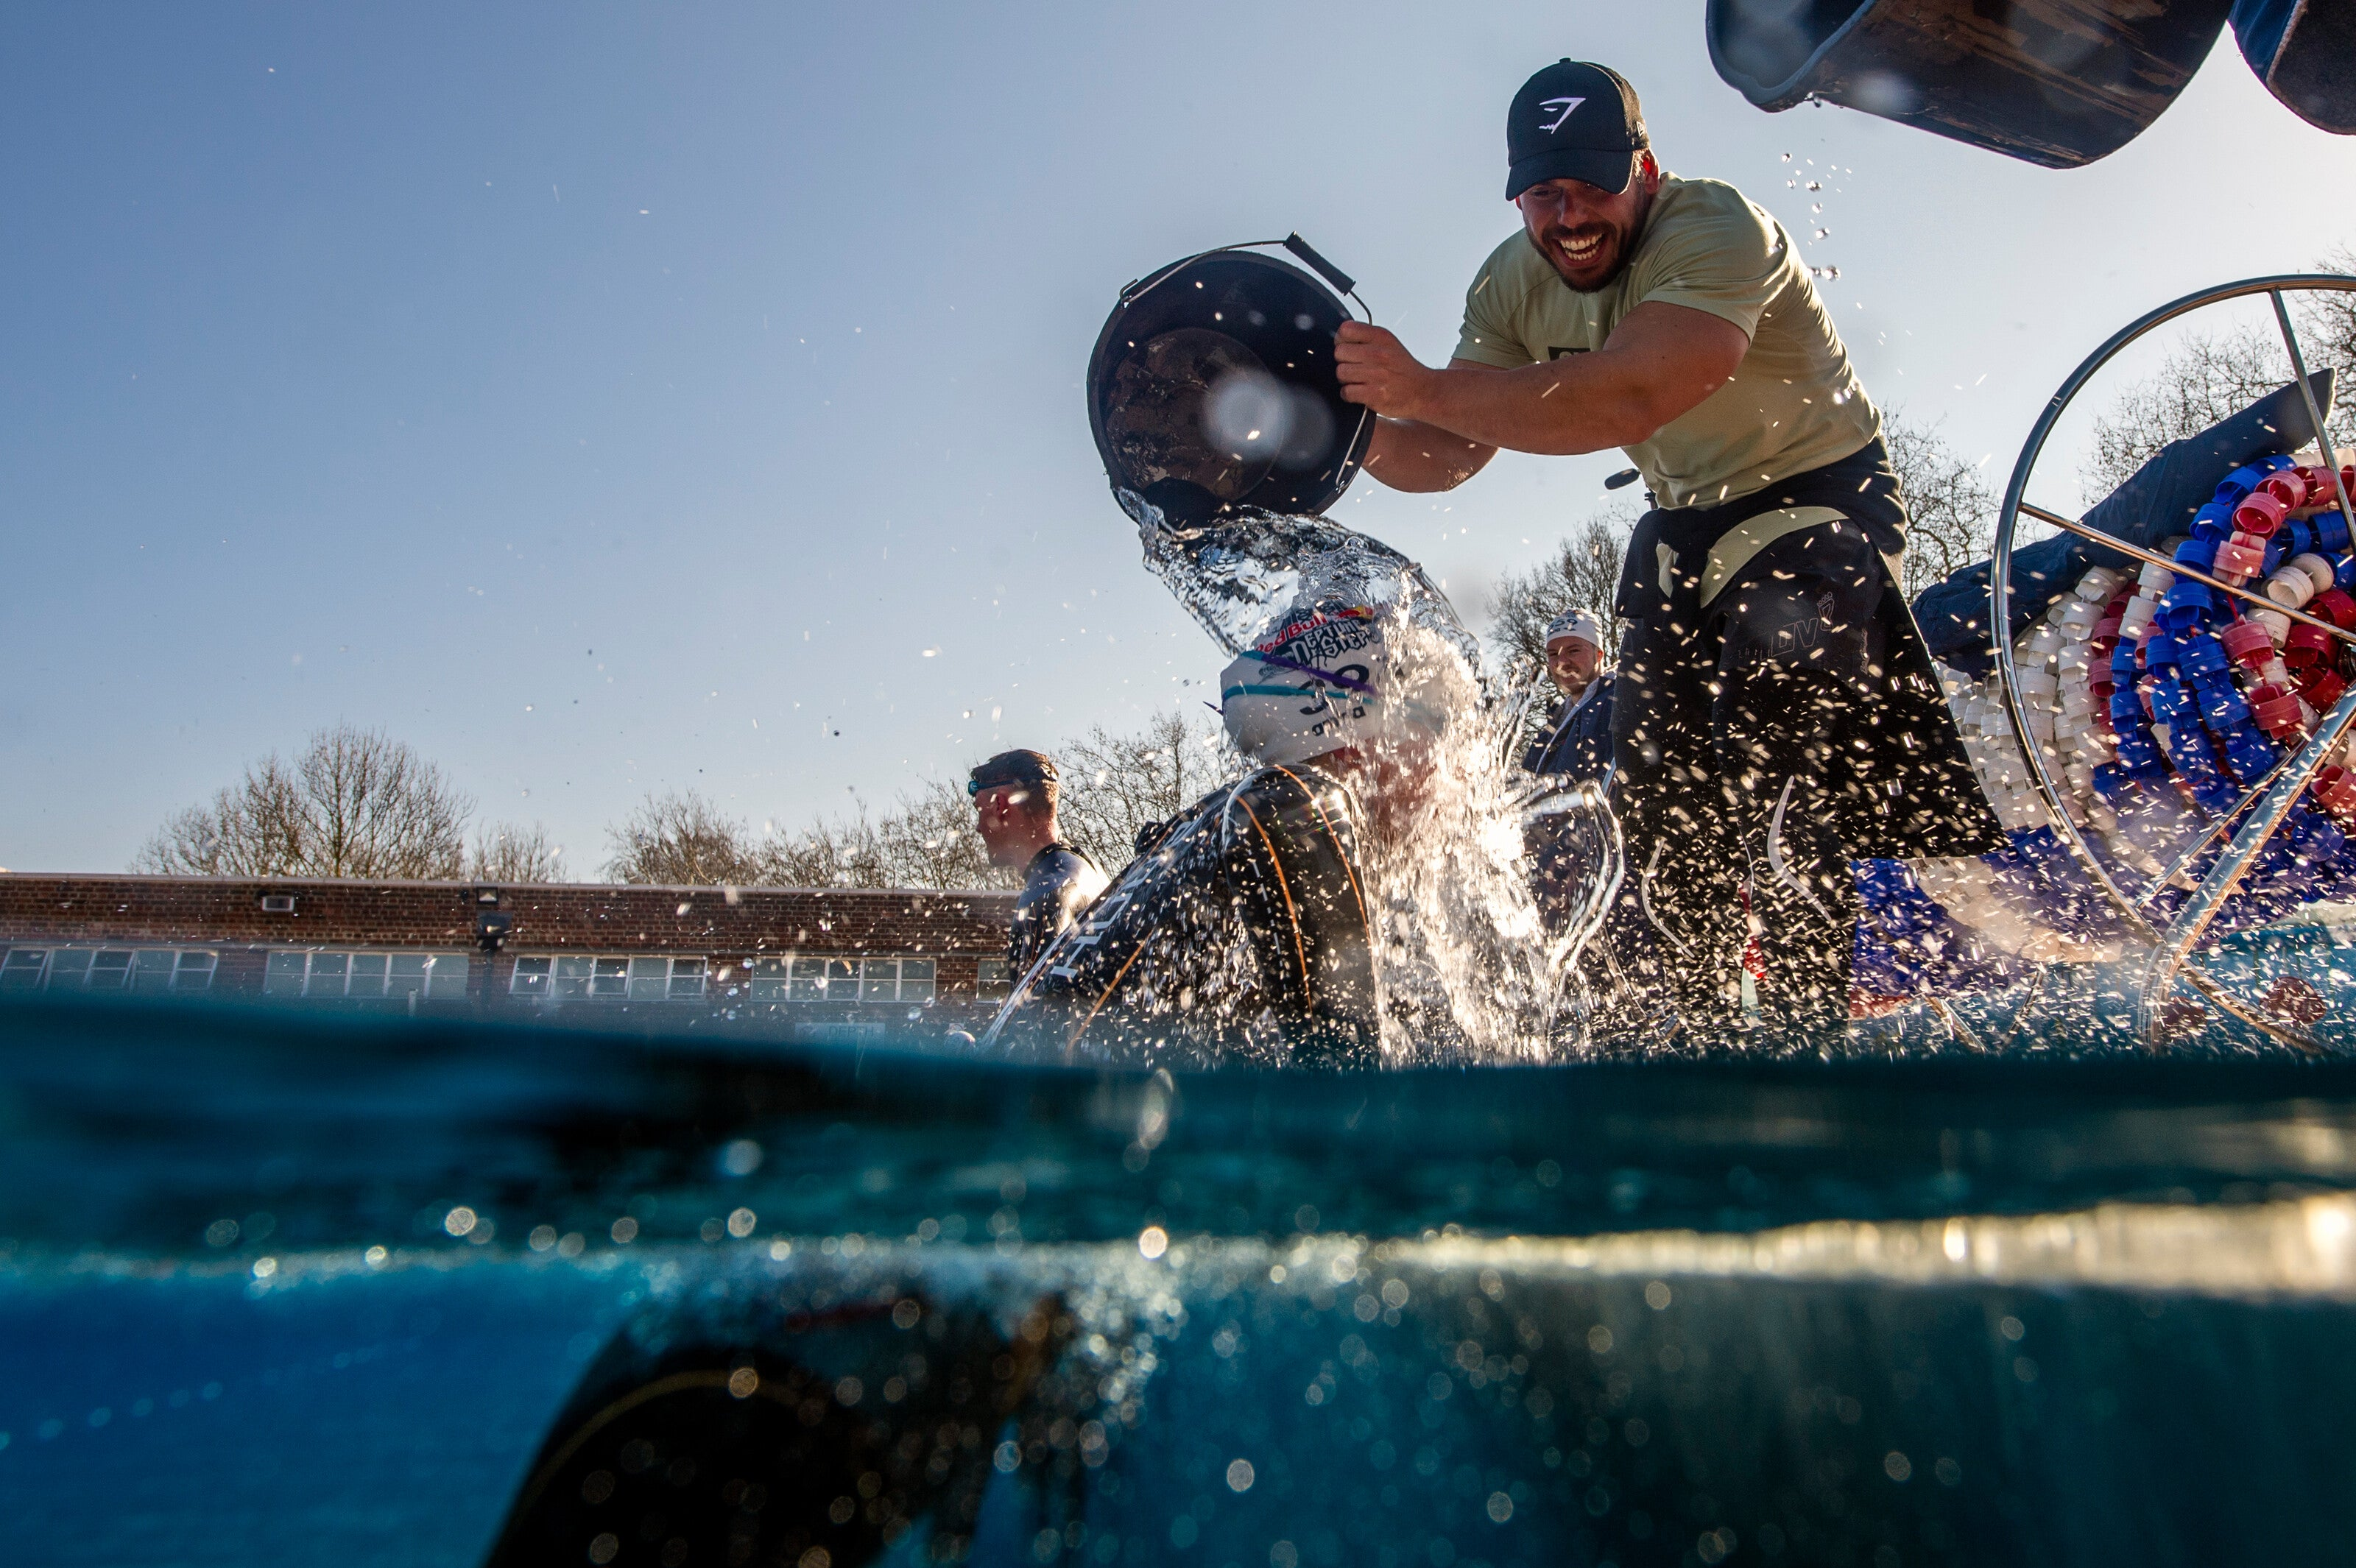 Ross Edgely throwing an ice bucket in training for Red Bull Neptune Steps